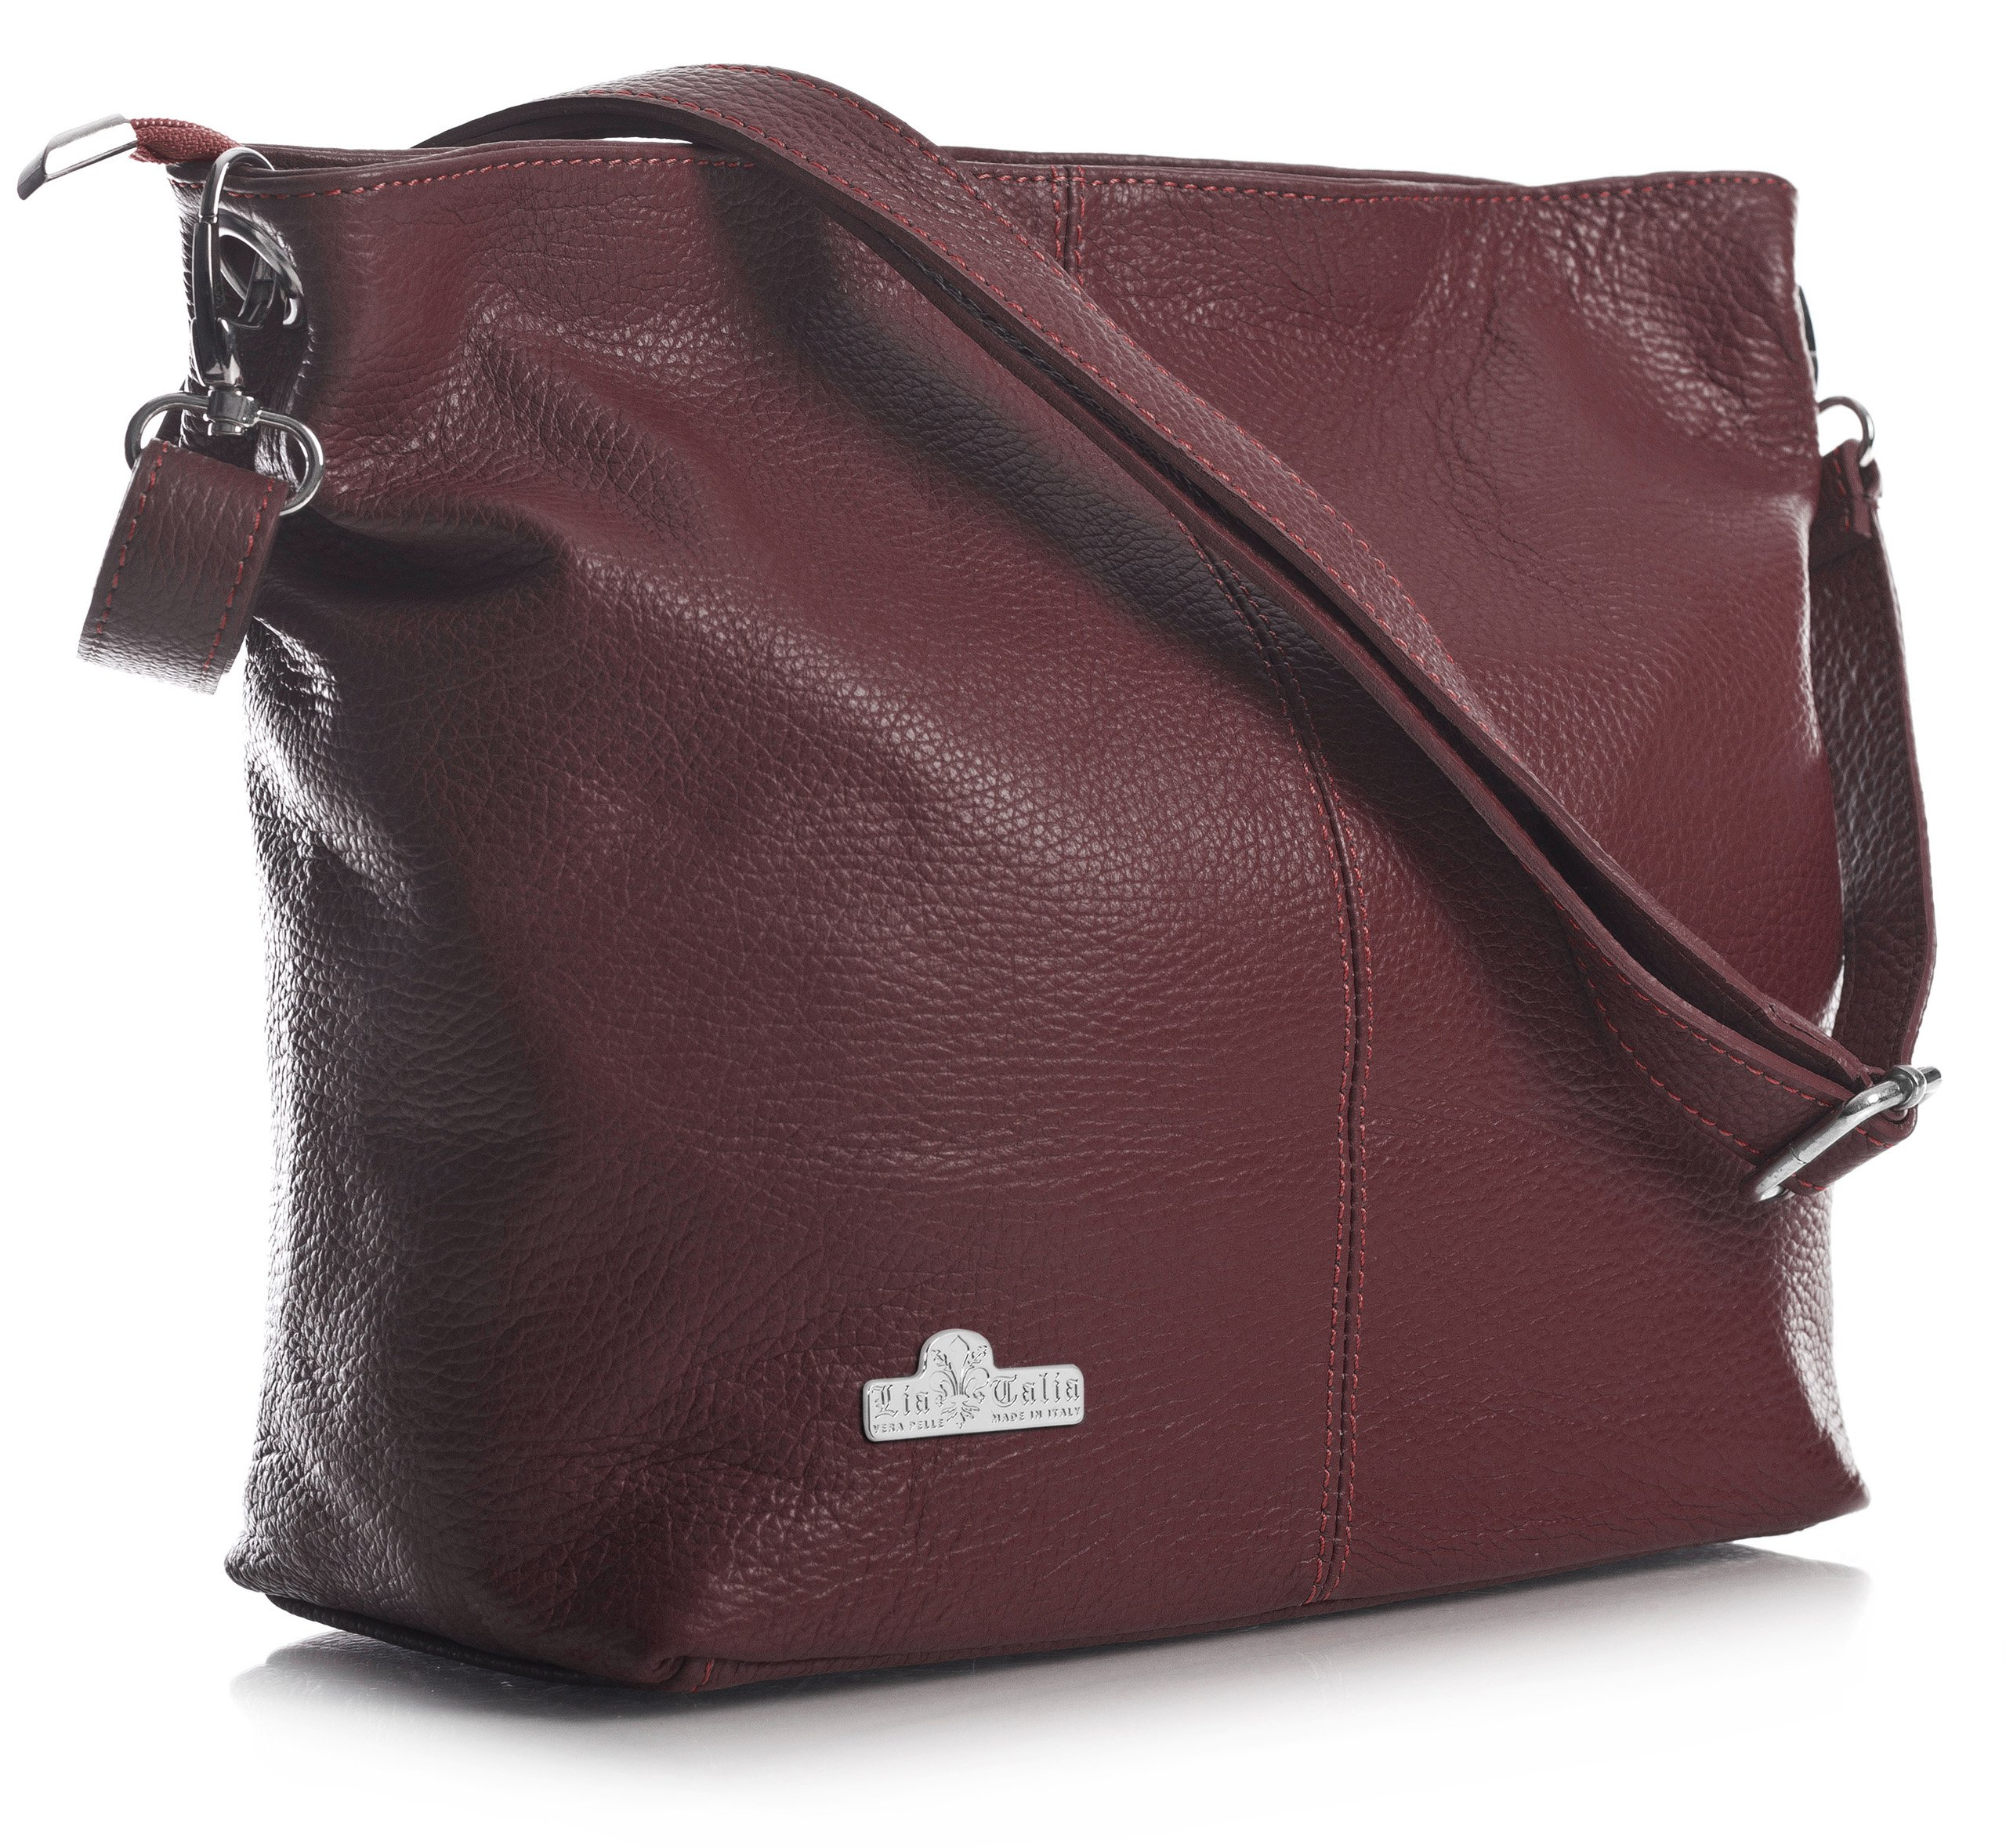 LiaTalia Womens Genuine Italian Leather Medium Hobo Shoulder Bag with Protective Storage Bag - Adal [Deep Red] by LiaTalia (Image #1)